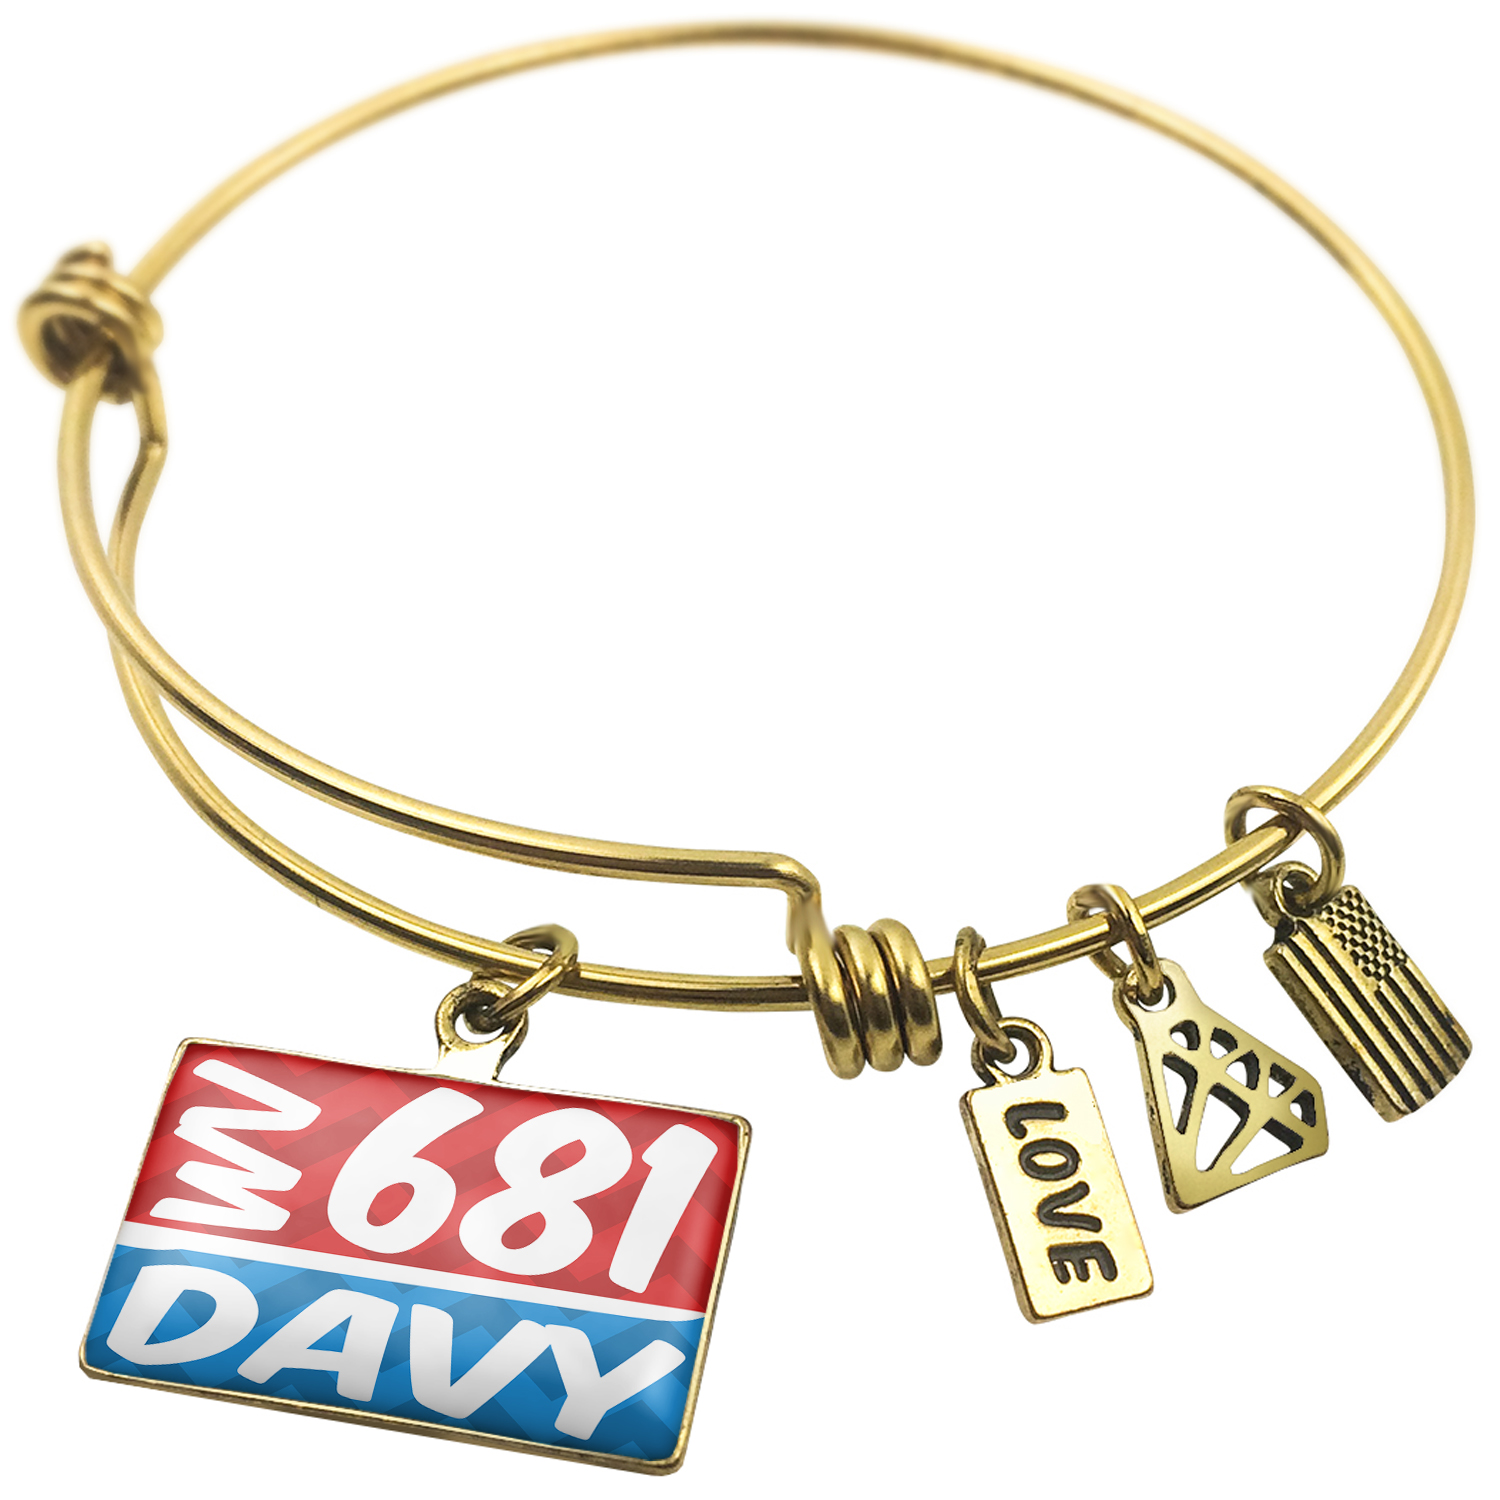 Expandable Wire Bangle Bracelet 681 Davy, WV red/blue - NEONBLOND